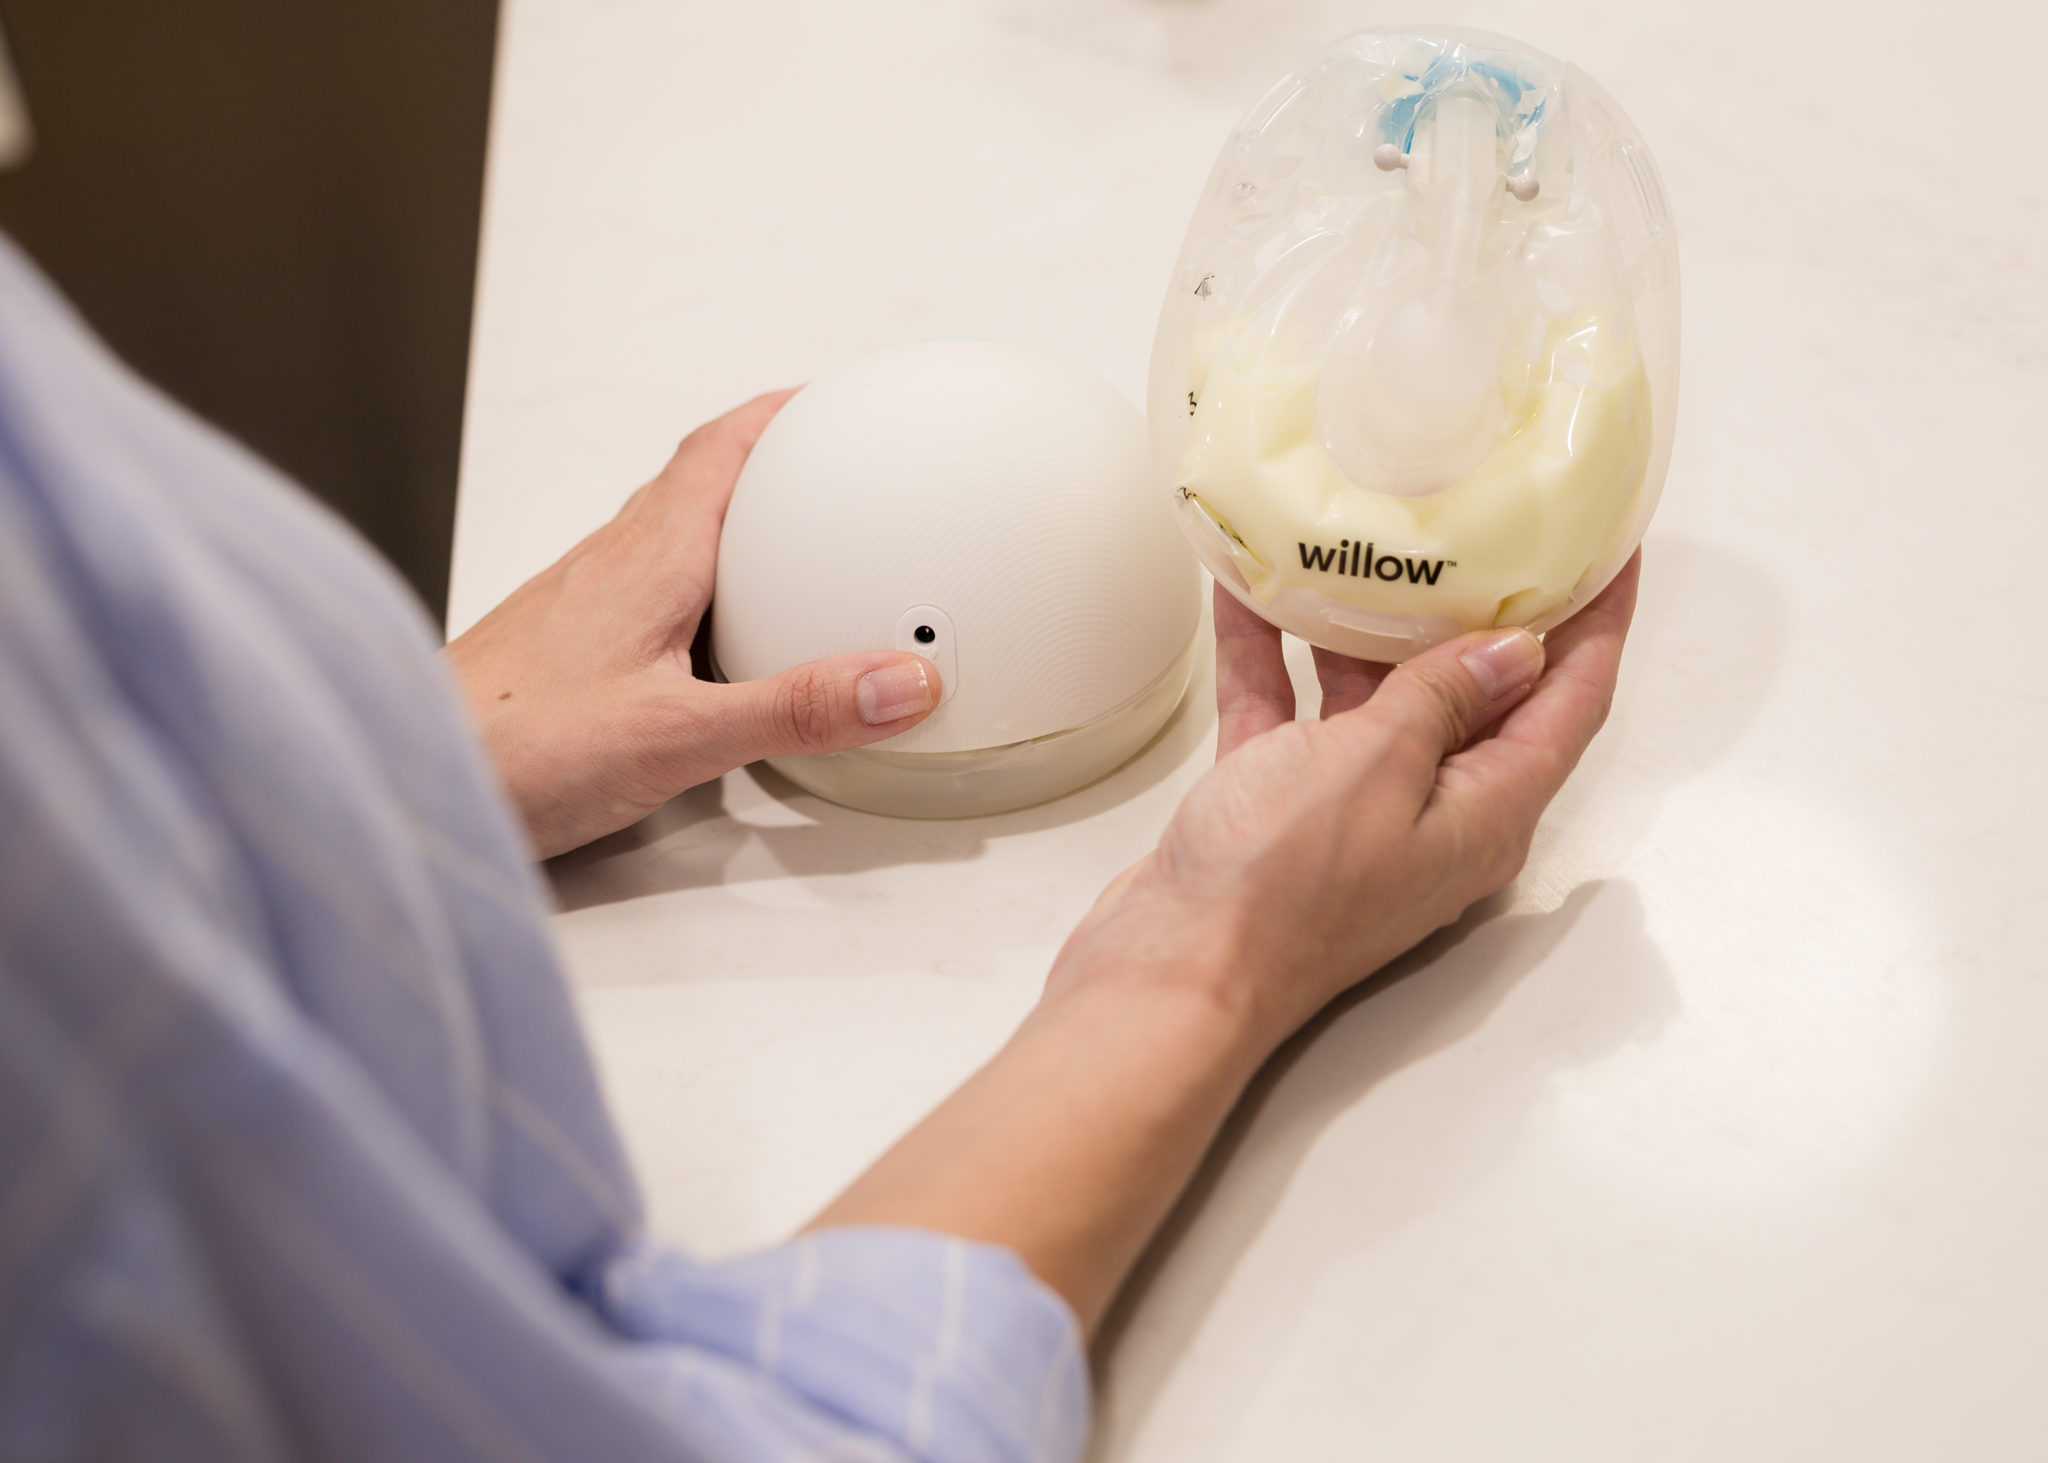 My honest review of the Willow hands wearable breast pump